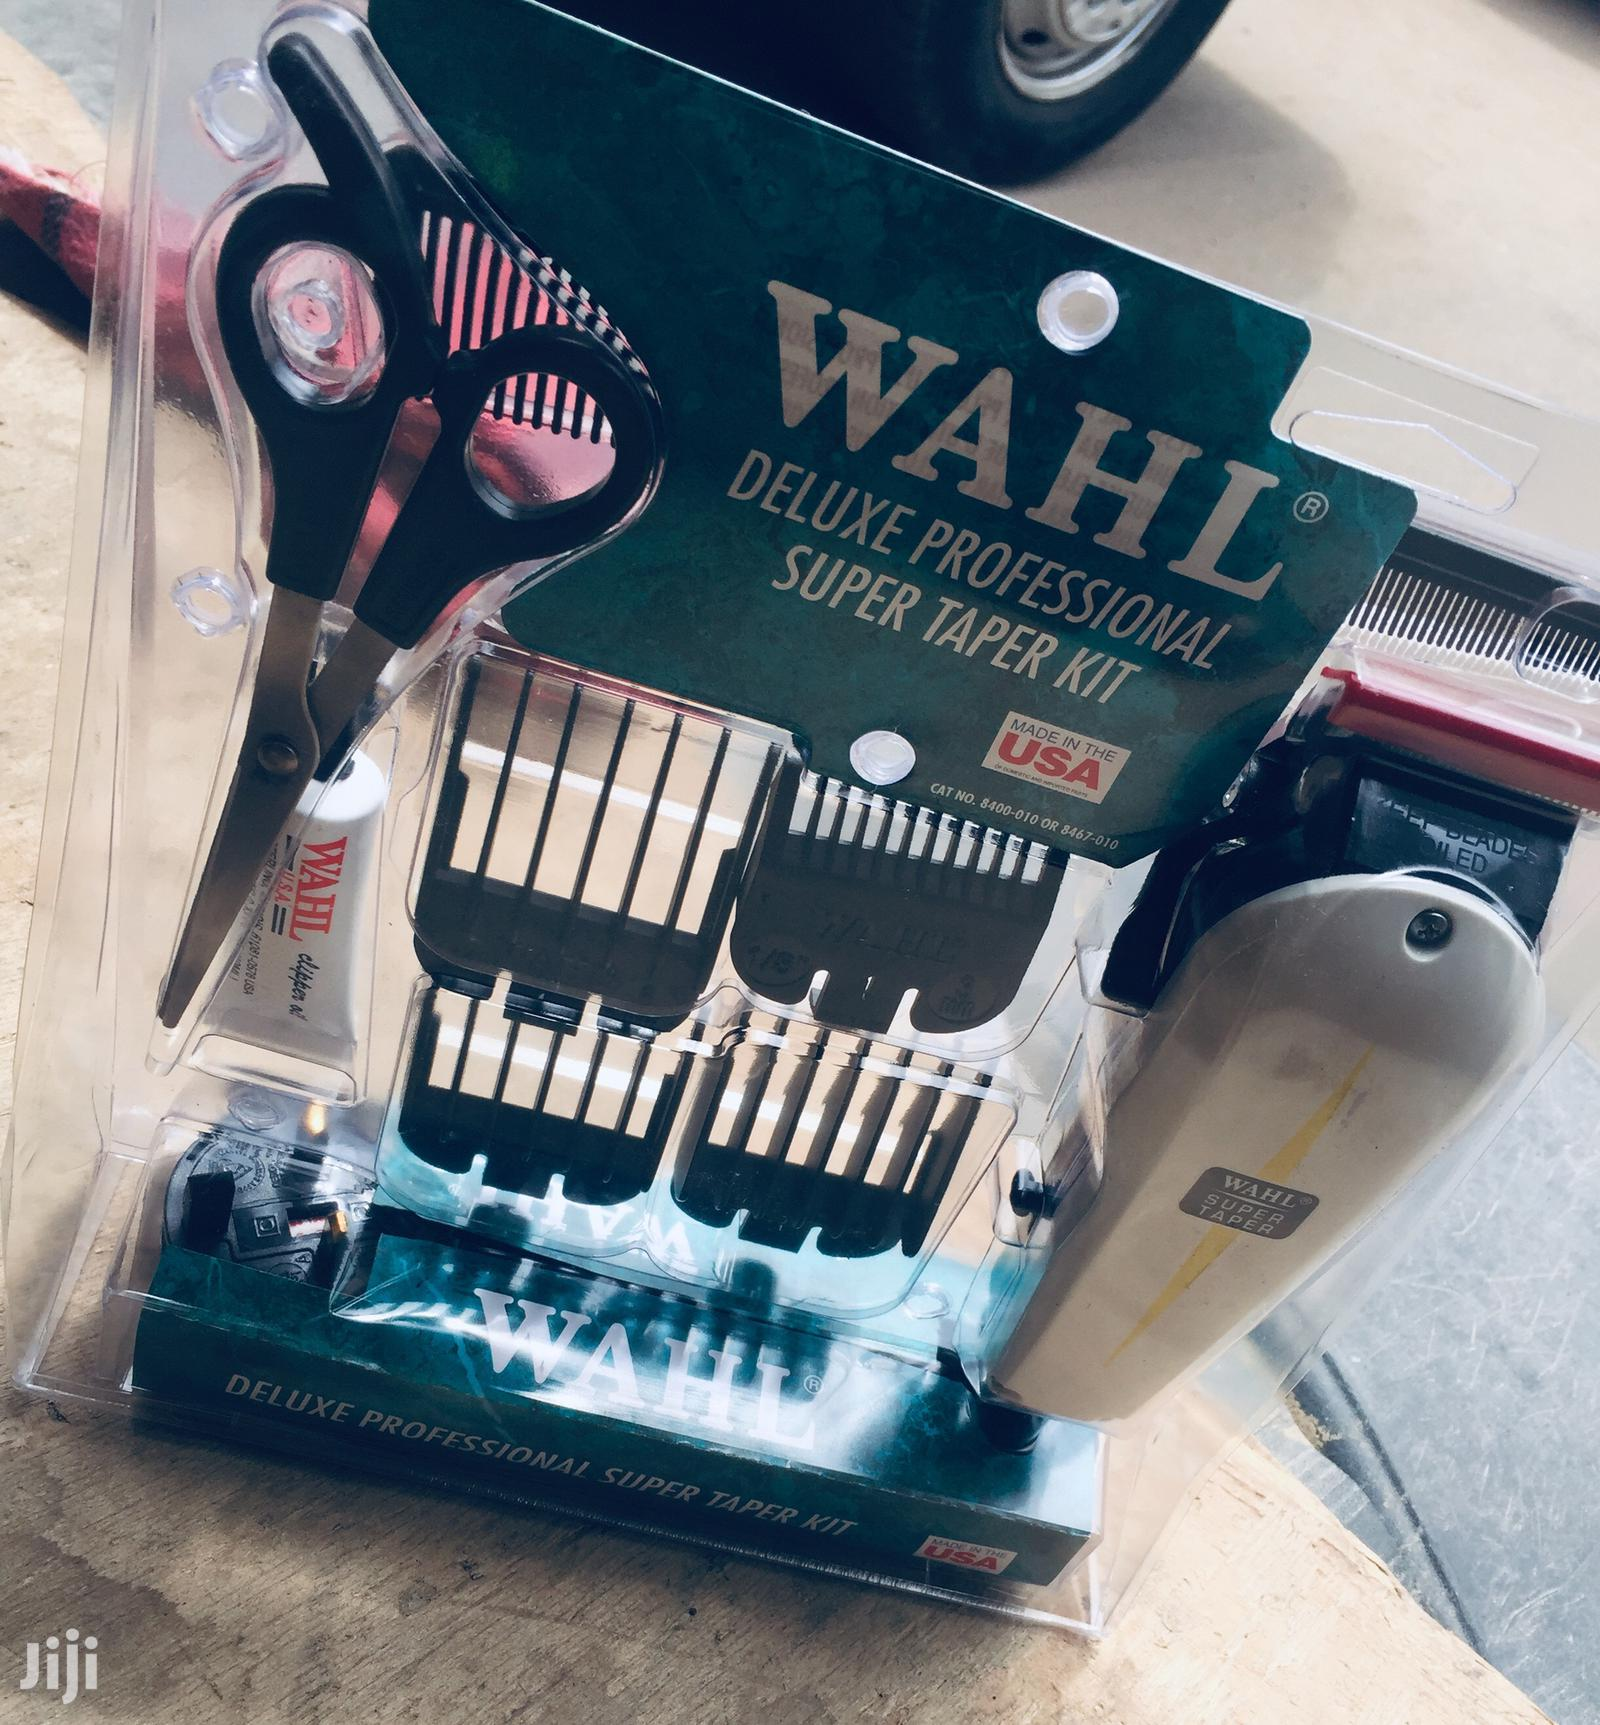 Wahl Deluxe Professional Super Taper Hair Clipper